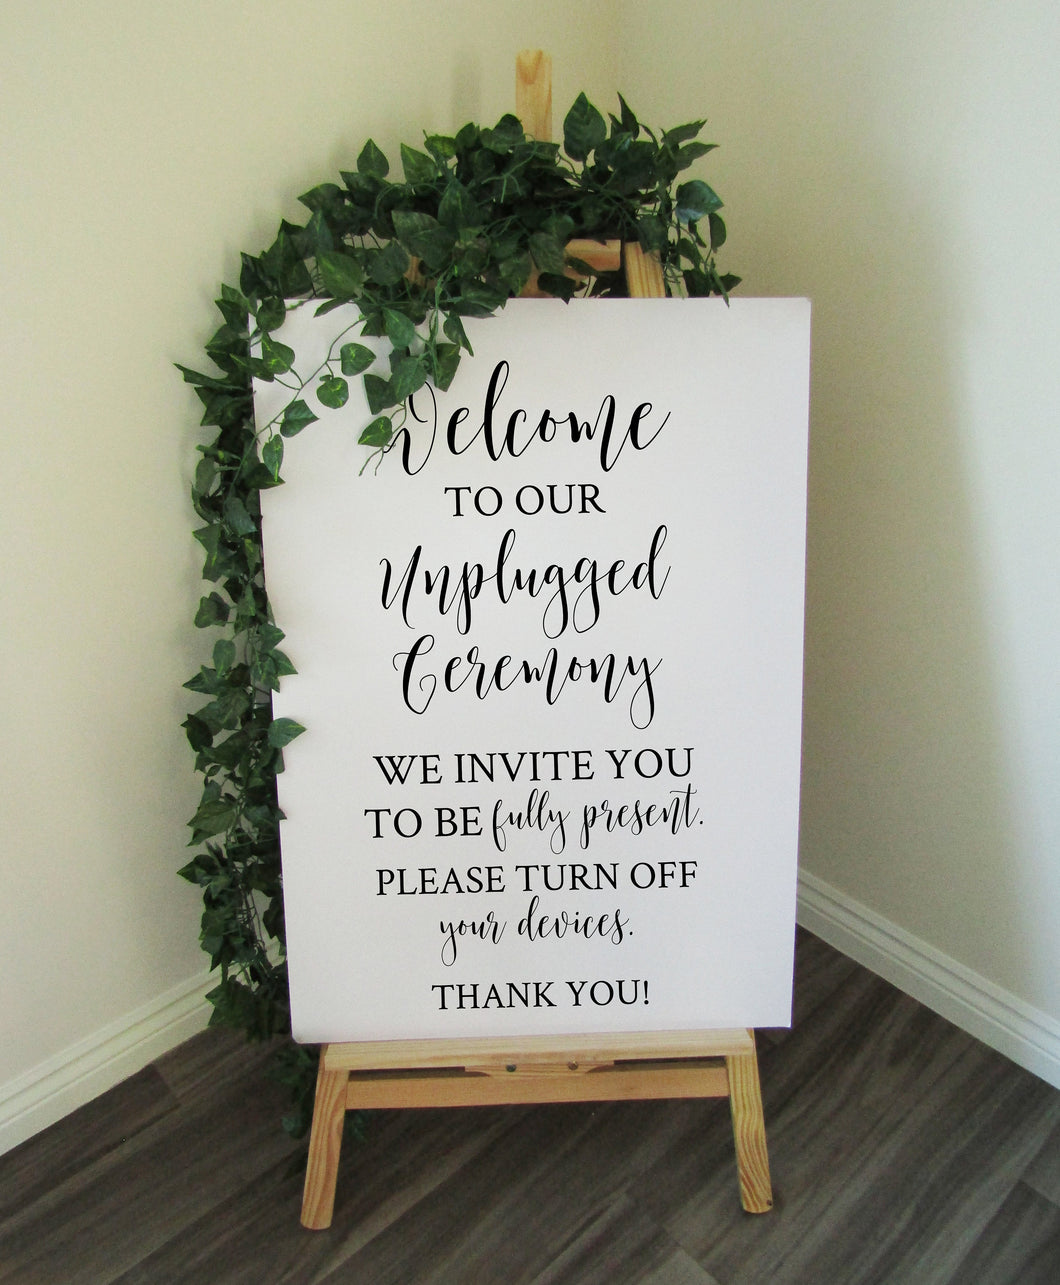 Vinyl Decal Unplugged Ceremony Wedding Welcome Sign // A3/A2 // DIY Ceremony Signage